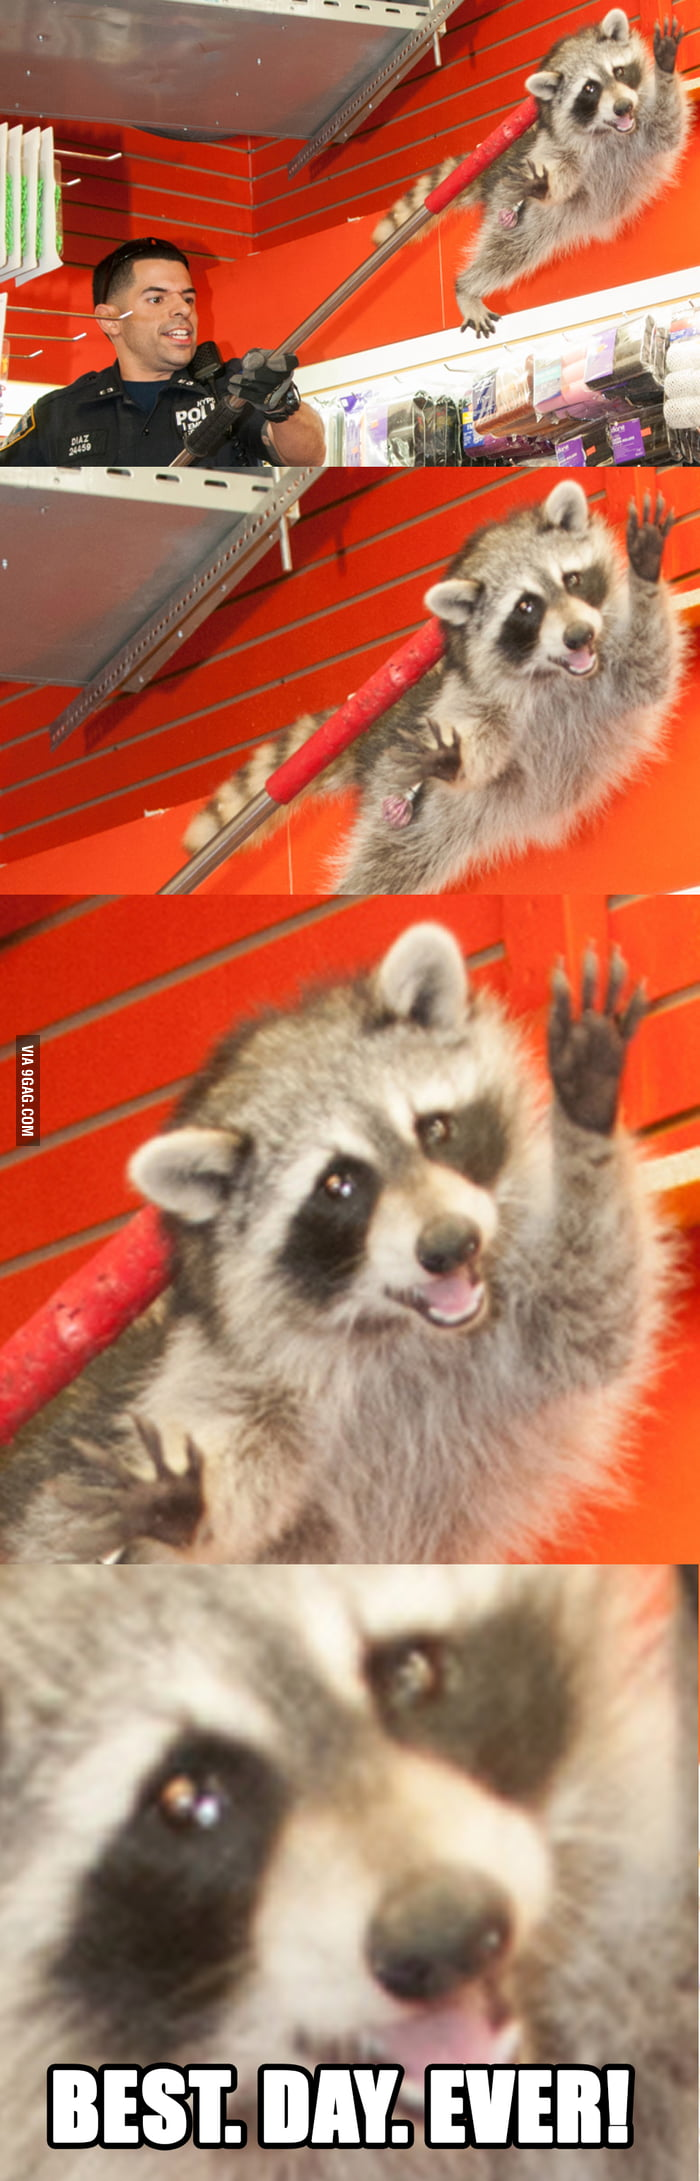 aAVD22E_700b racoon best day ever! 9gag